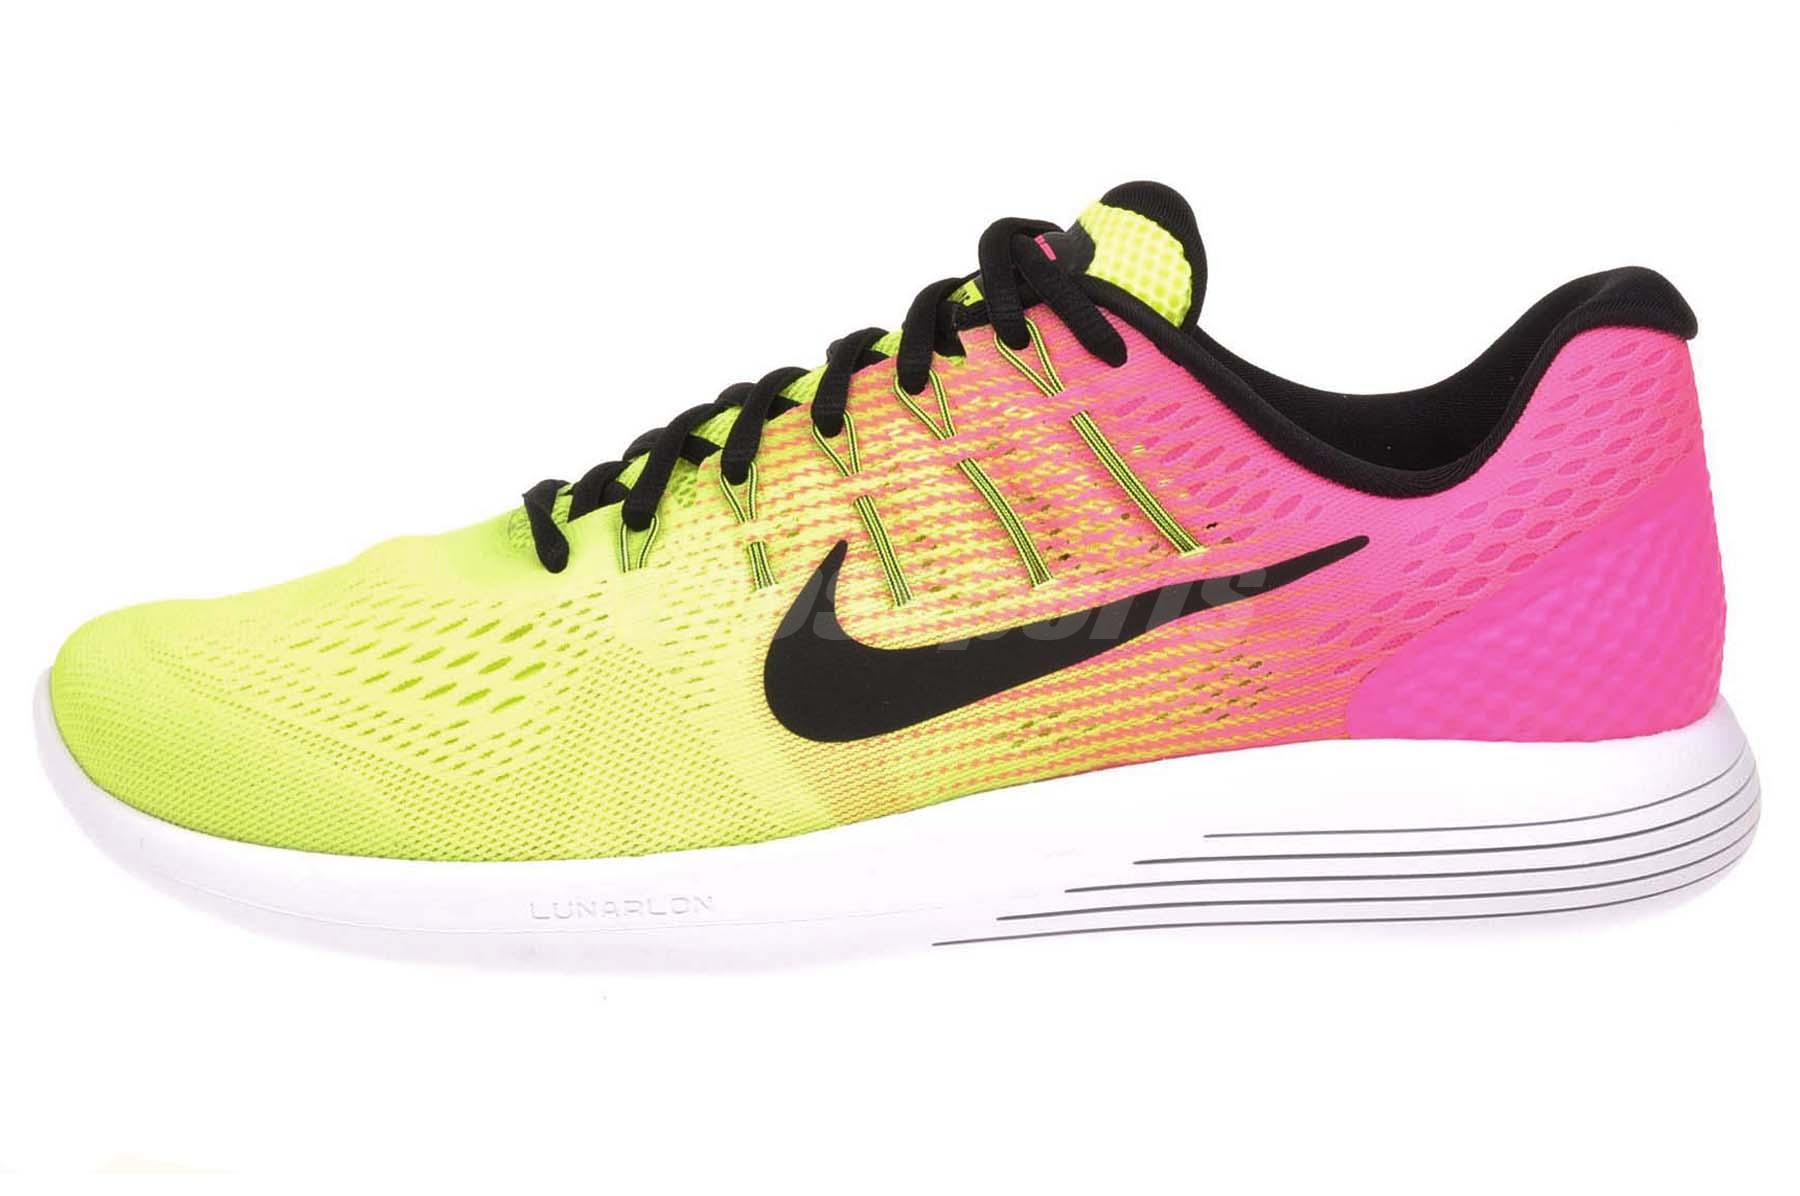 a46b5b9644db6 ... Nike Lunarglide 8 OC Running Mens Shoes Multi-color Olympics 844632-999  ...